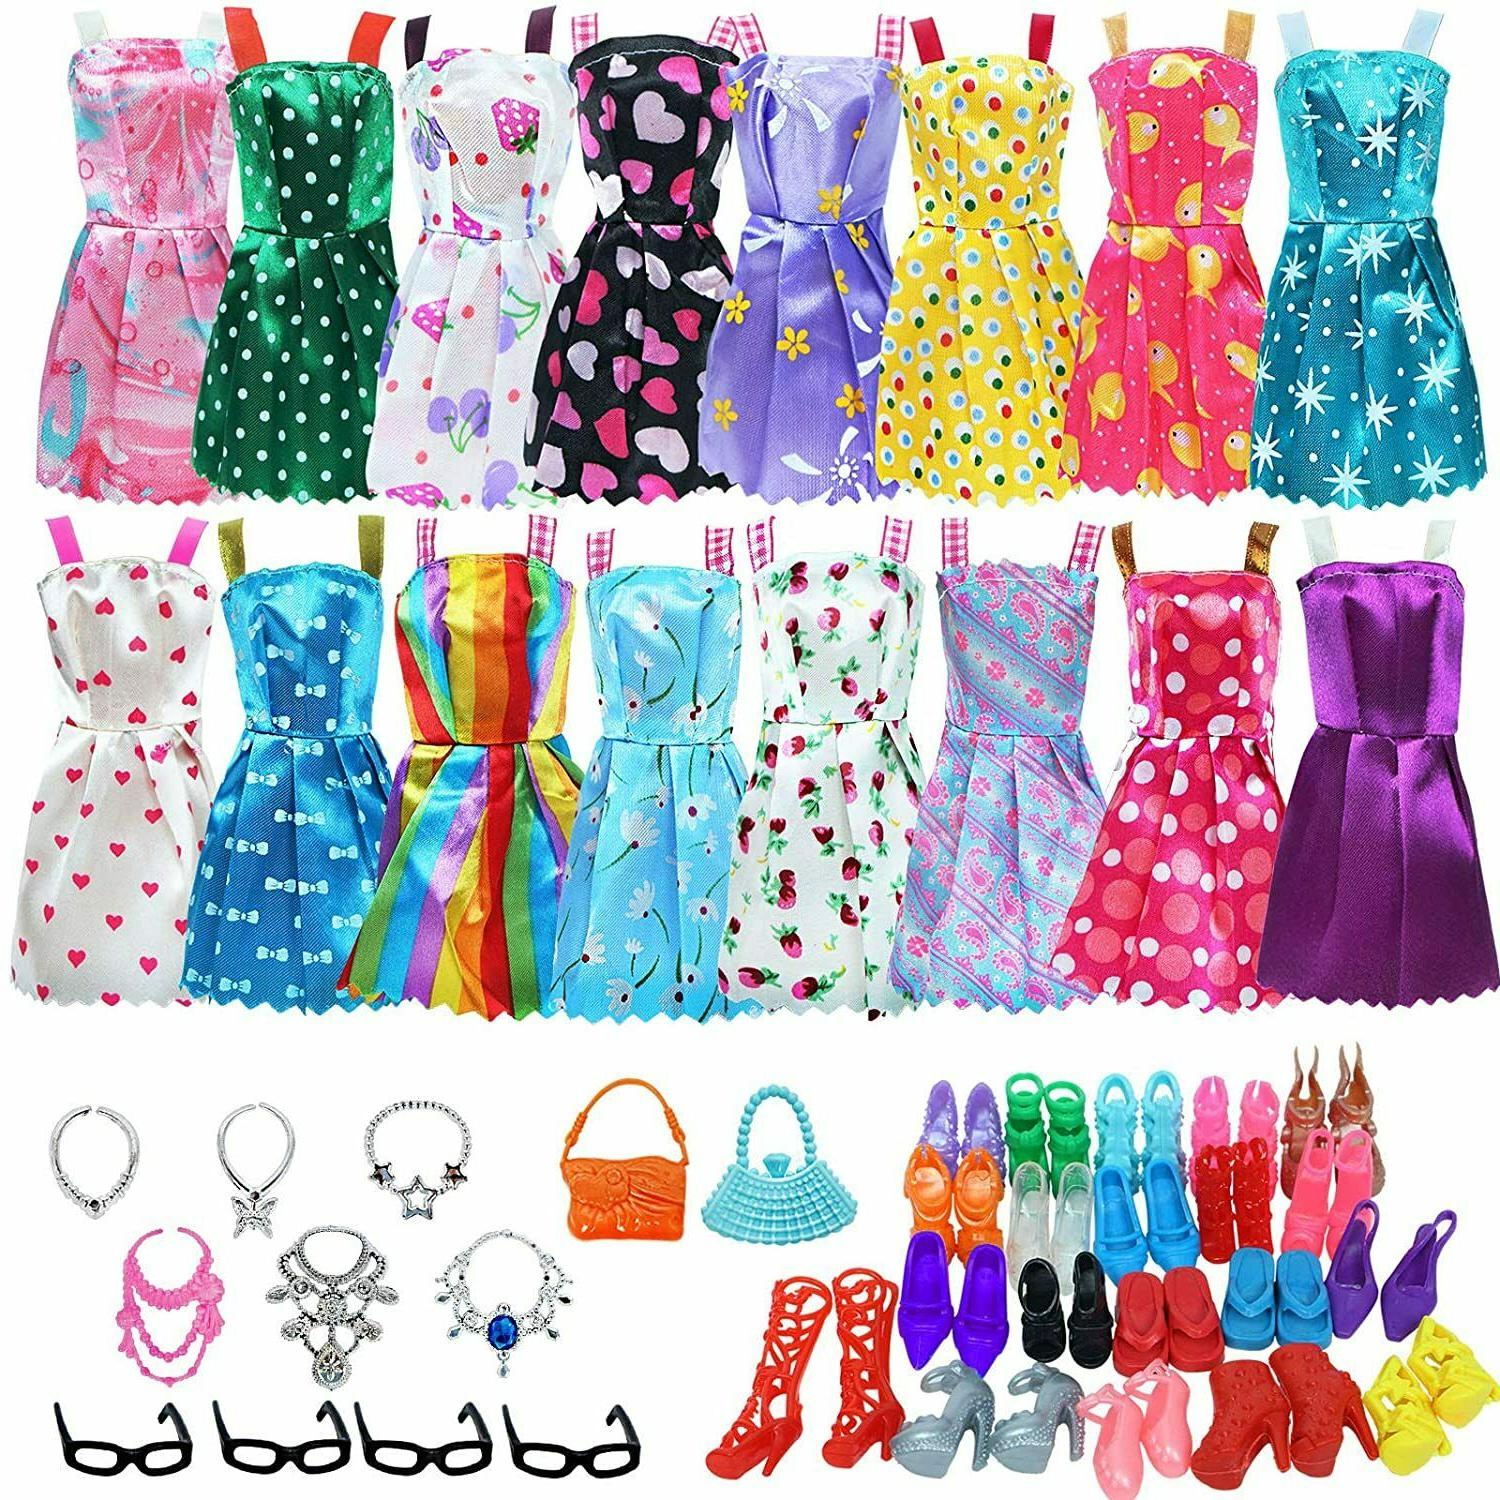 Clothes And Accessories For Barbie Doll 32 Pcs Party Dress O